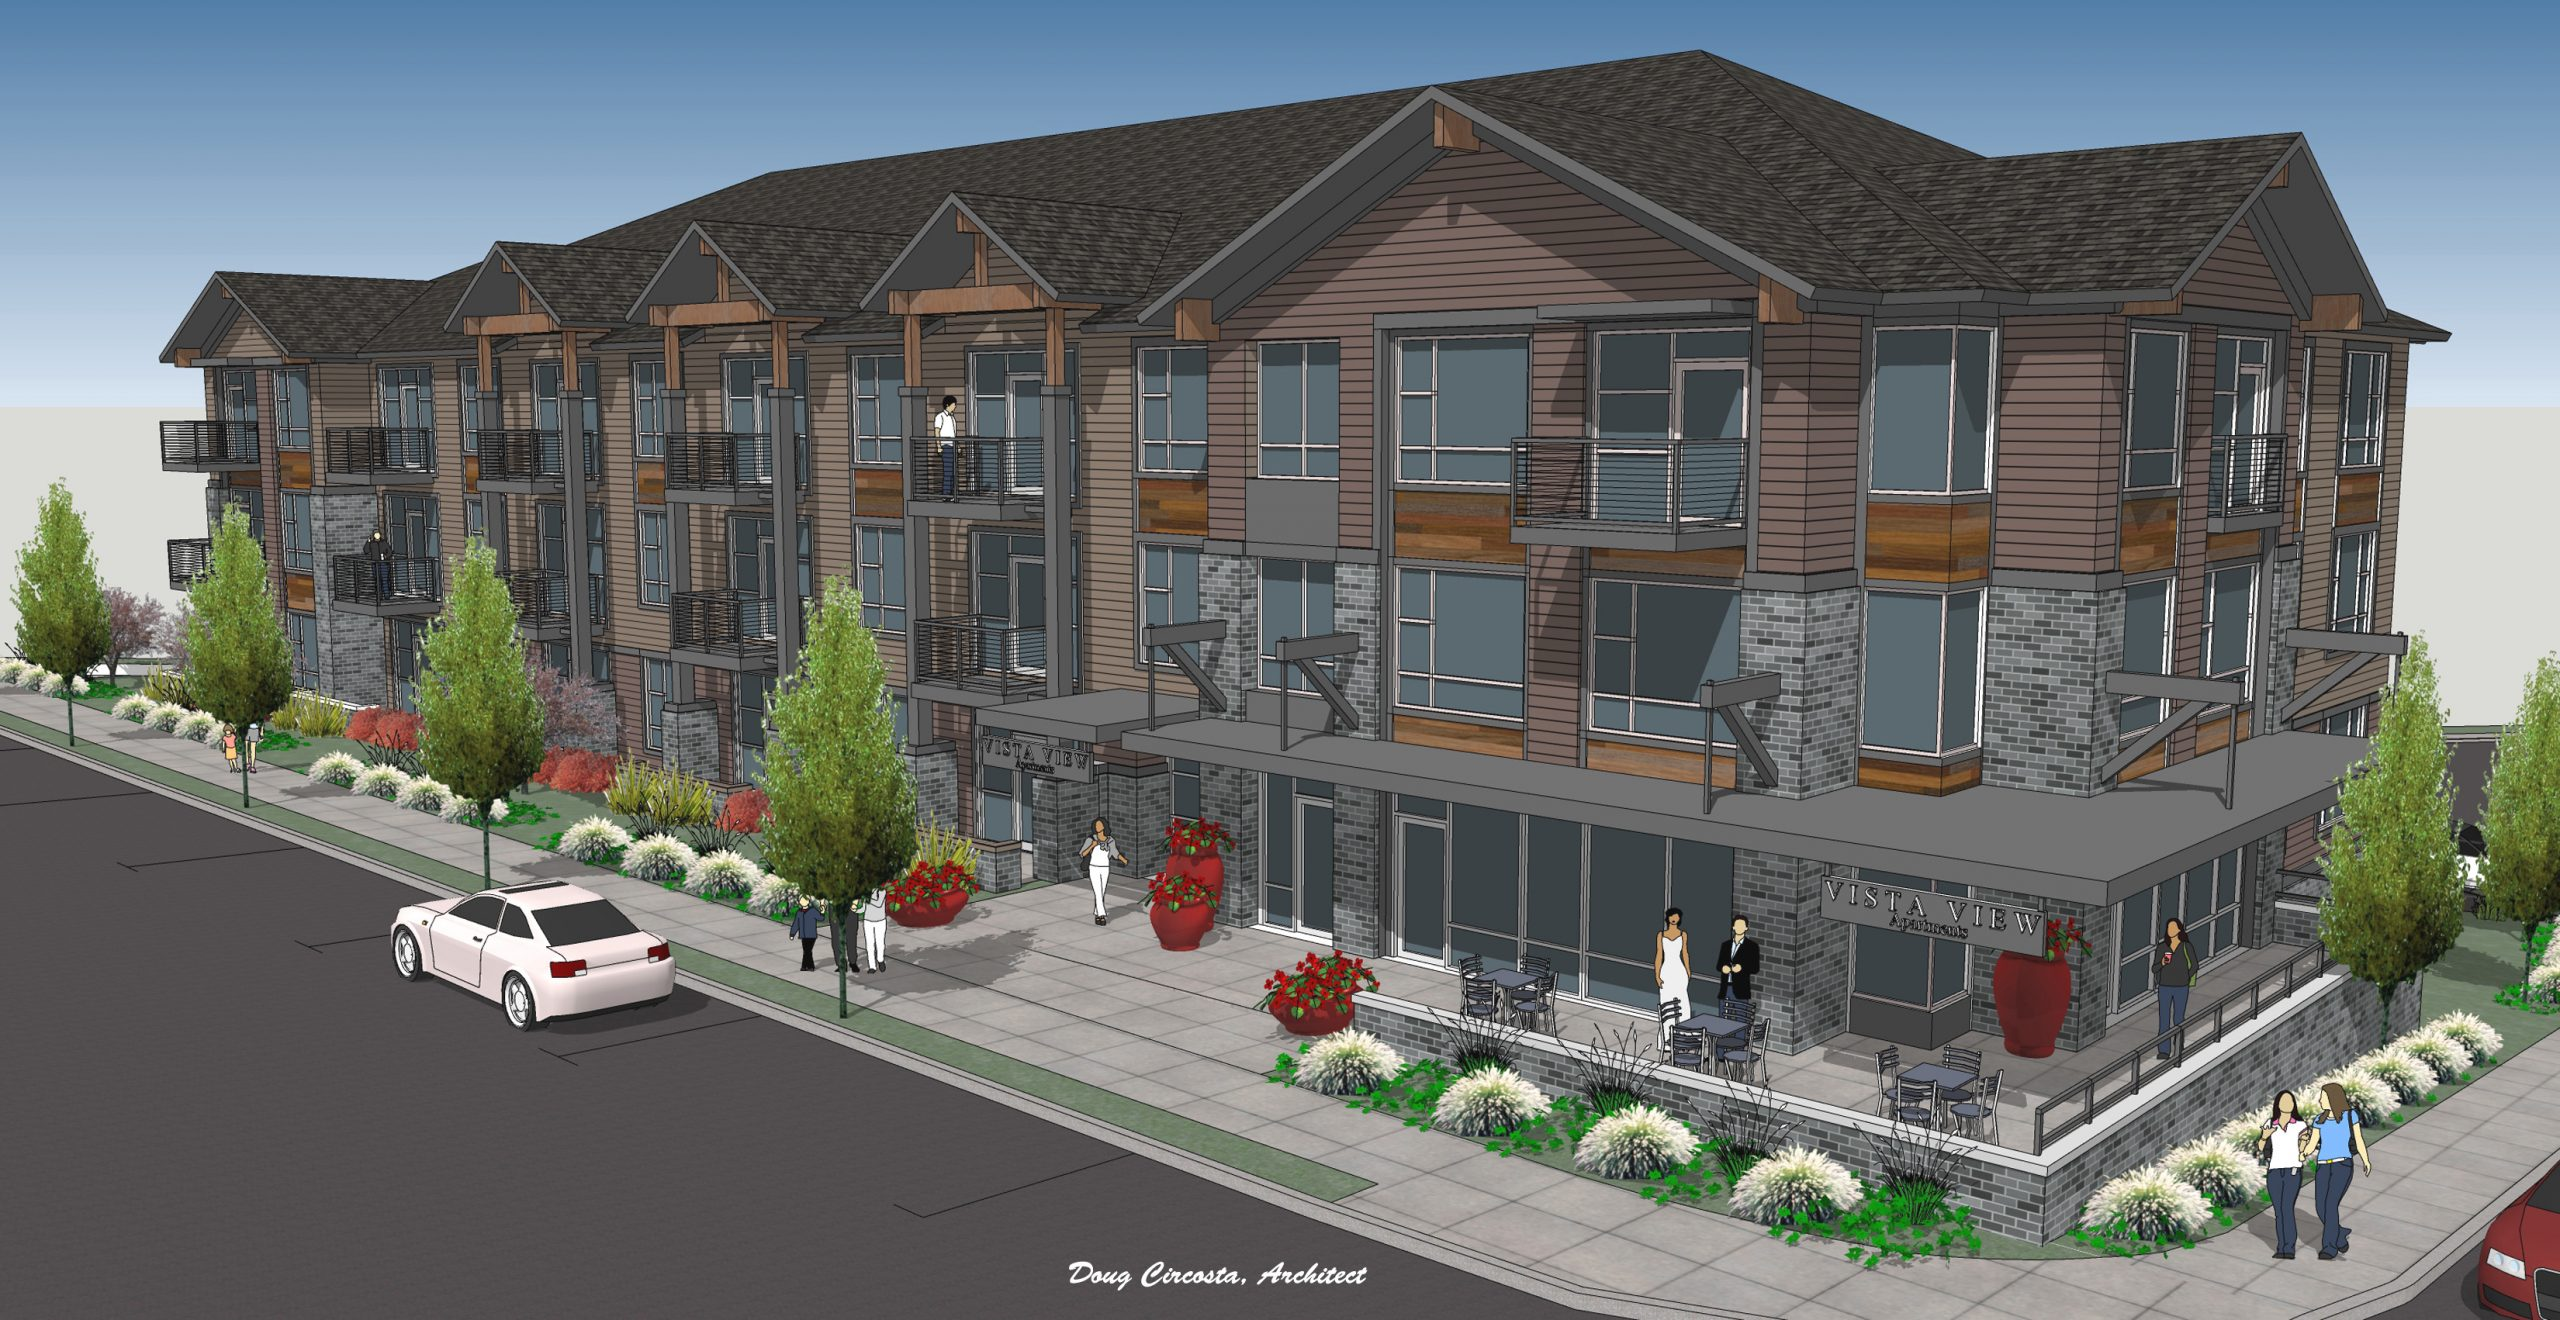 Will sell or JV two approved apartment projects (one in OZ) with building permits. www.firstwestrealty.net